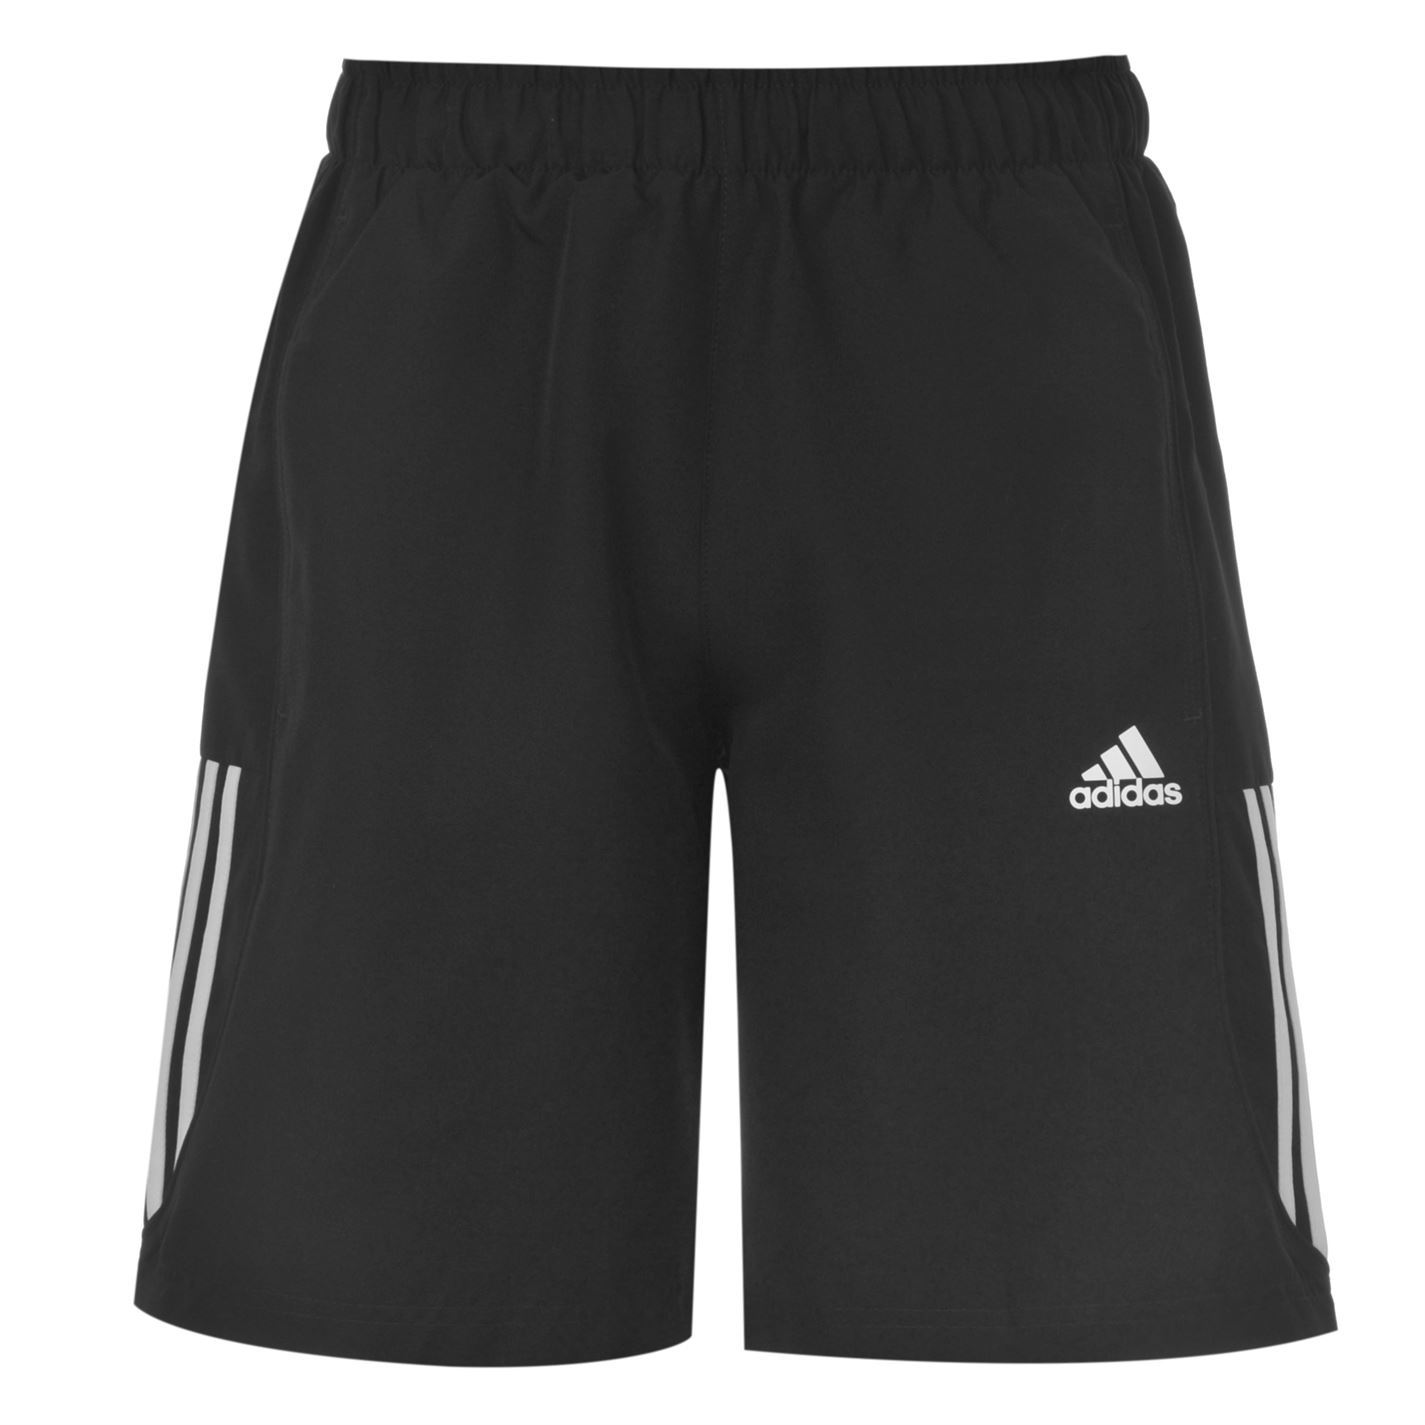 adidas 3 stripe chelsea climalite shorts mens black white. Black Bedroom Furniture Sets. Home Design Ideas